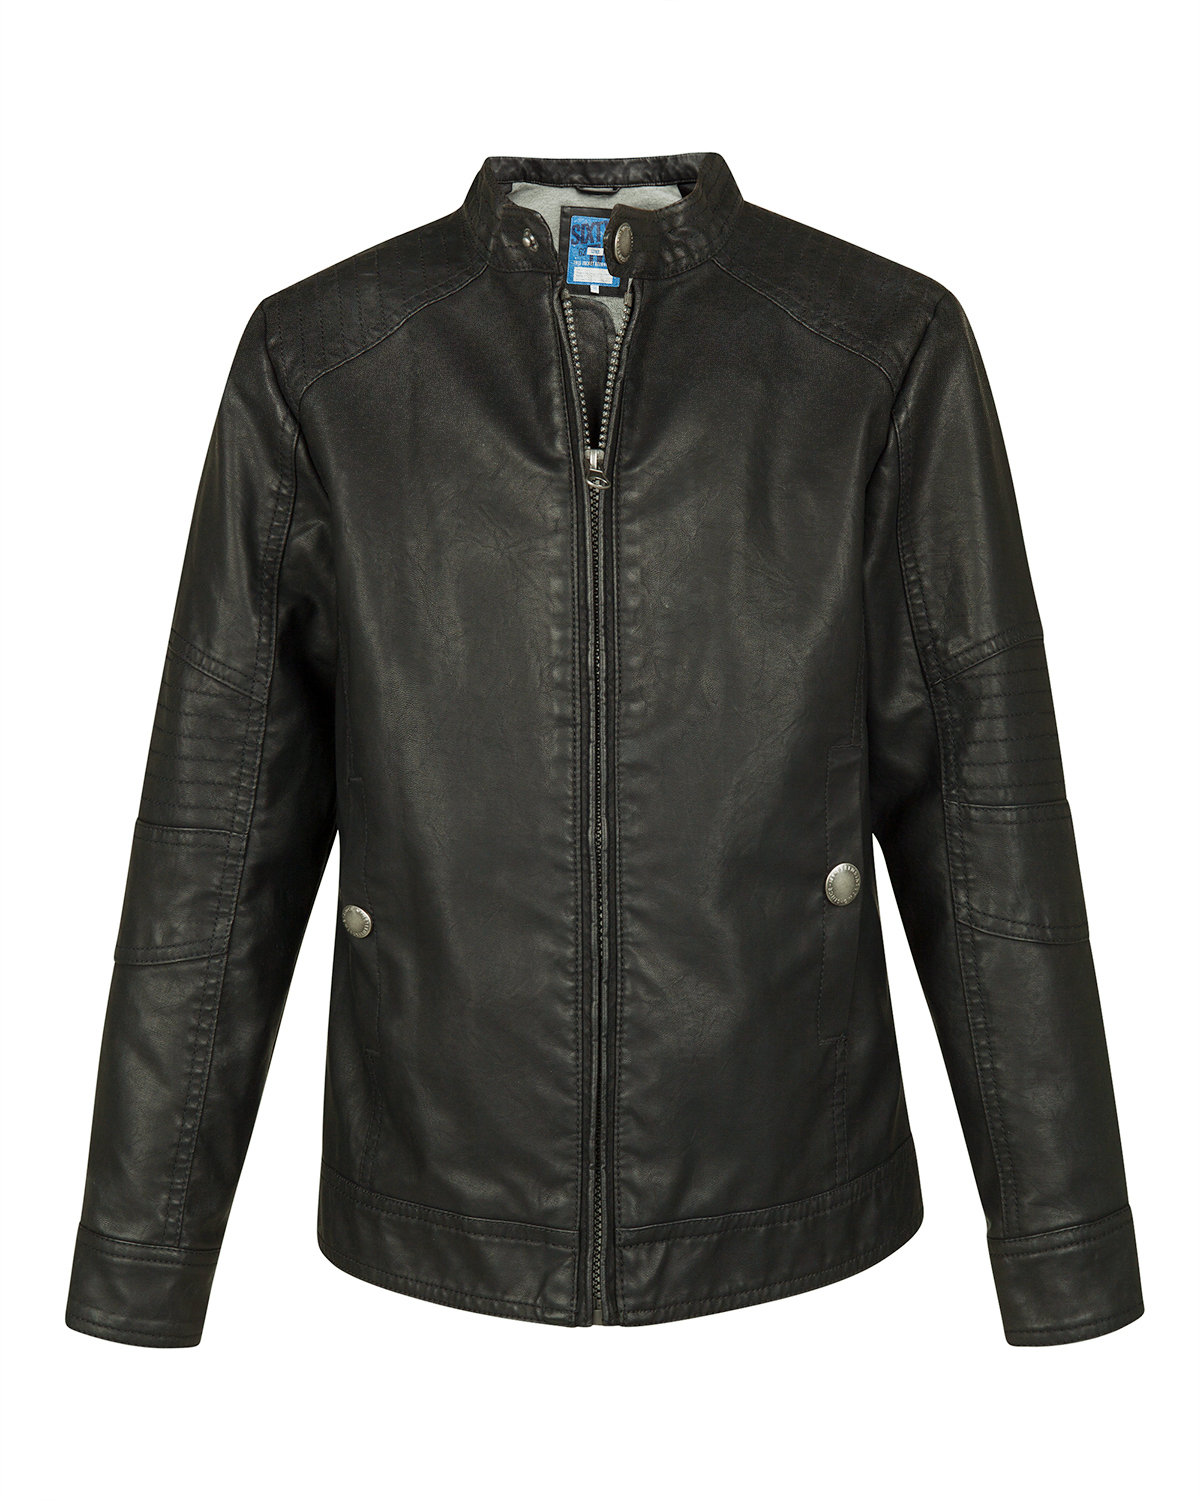 Jongens faux leather biker jacket